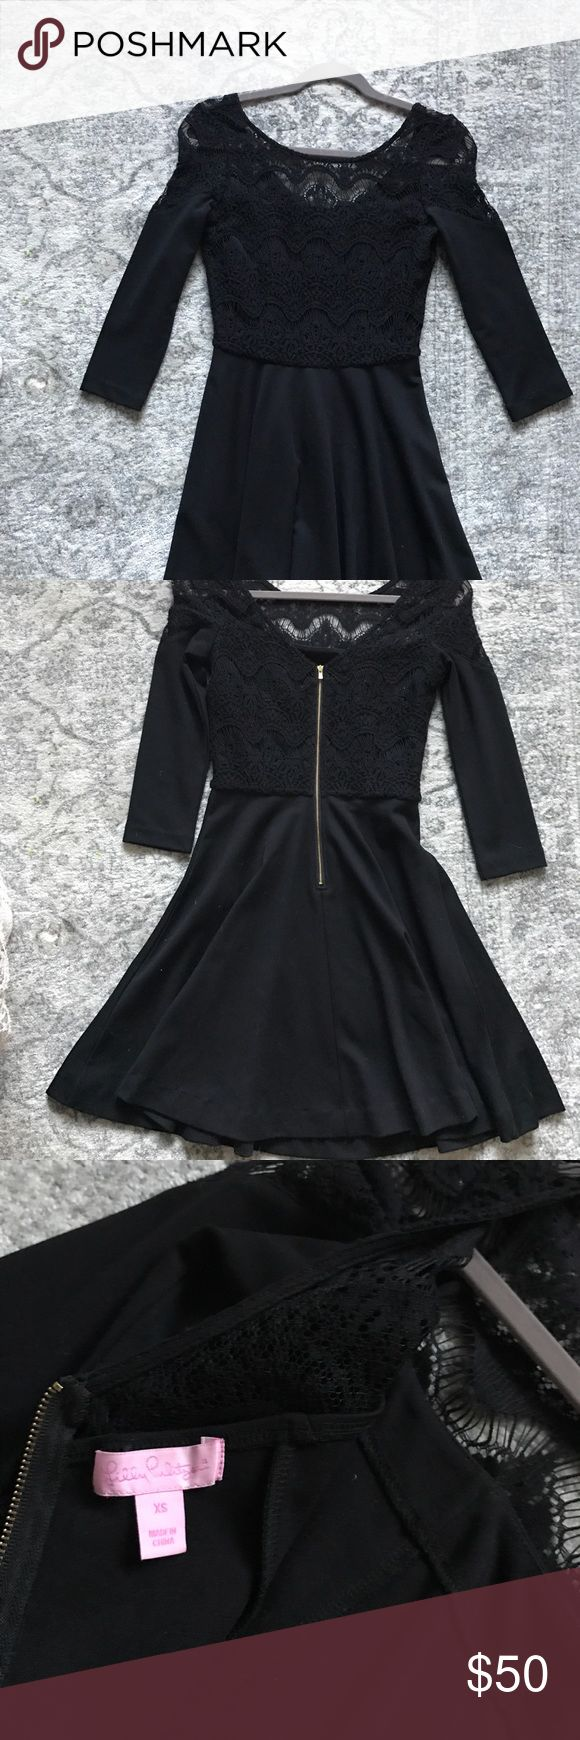 LILLY - Black, crochet cocktail dress Only worn once! Beautiful Lilly Pulitzer cocktail dress, size XS, in perfect condition. Lilly Pulitzer Dresses Midi